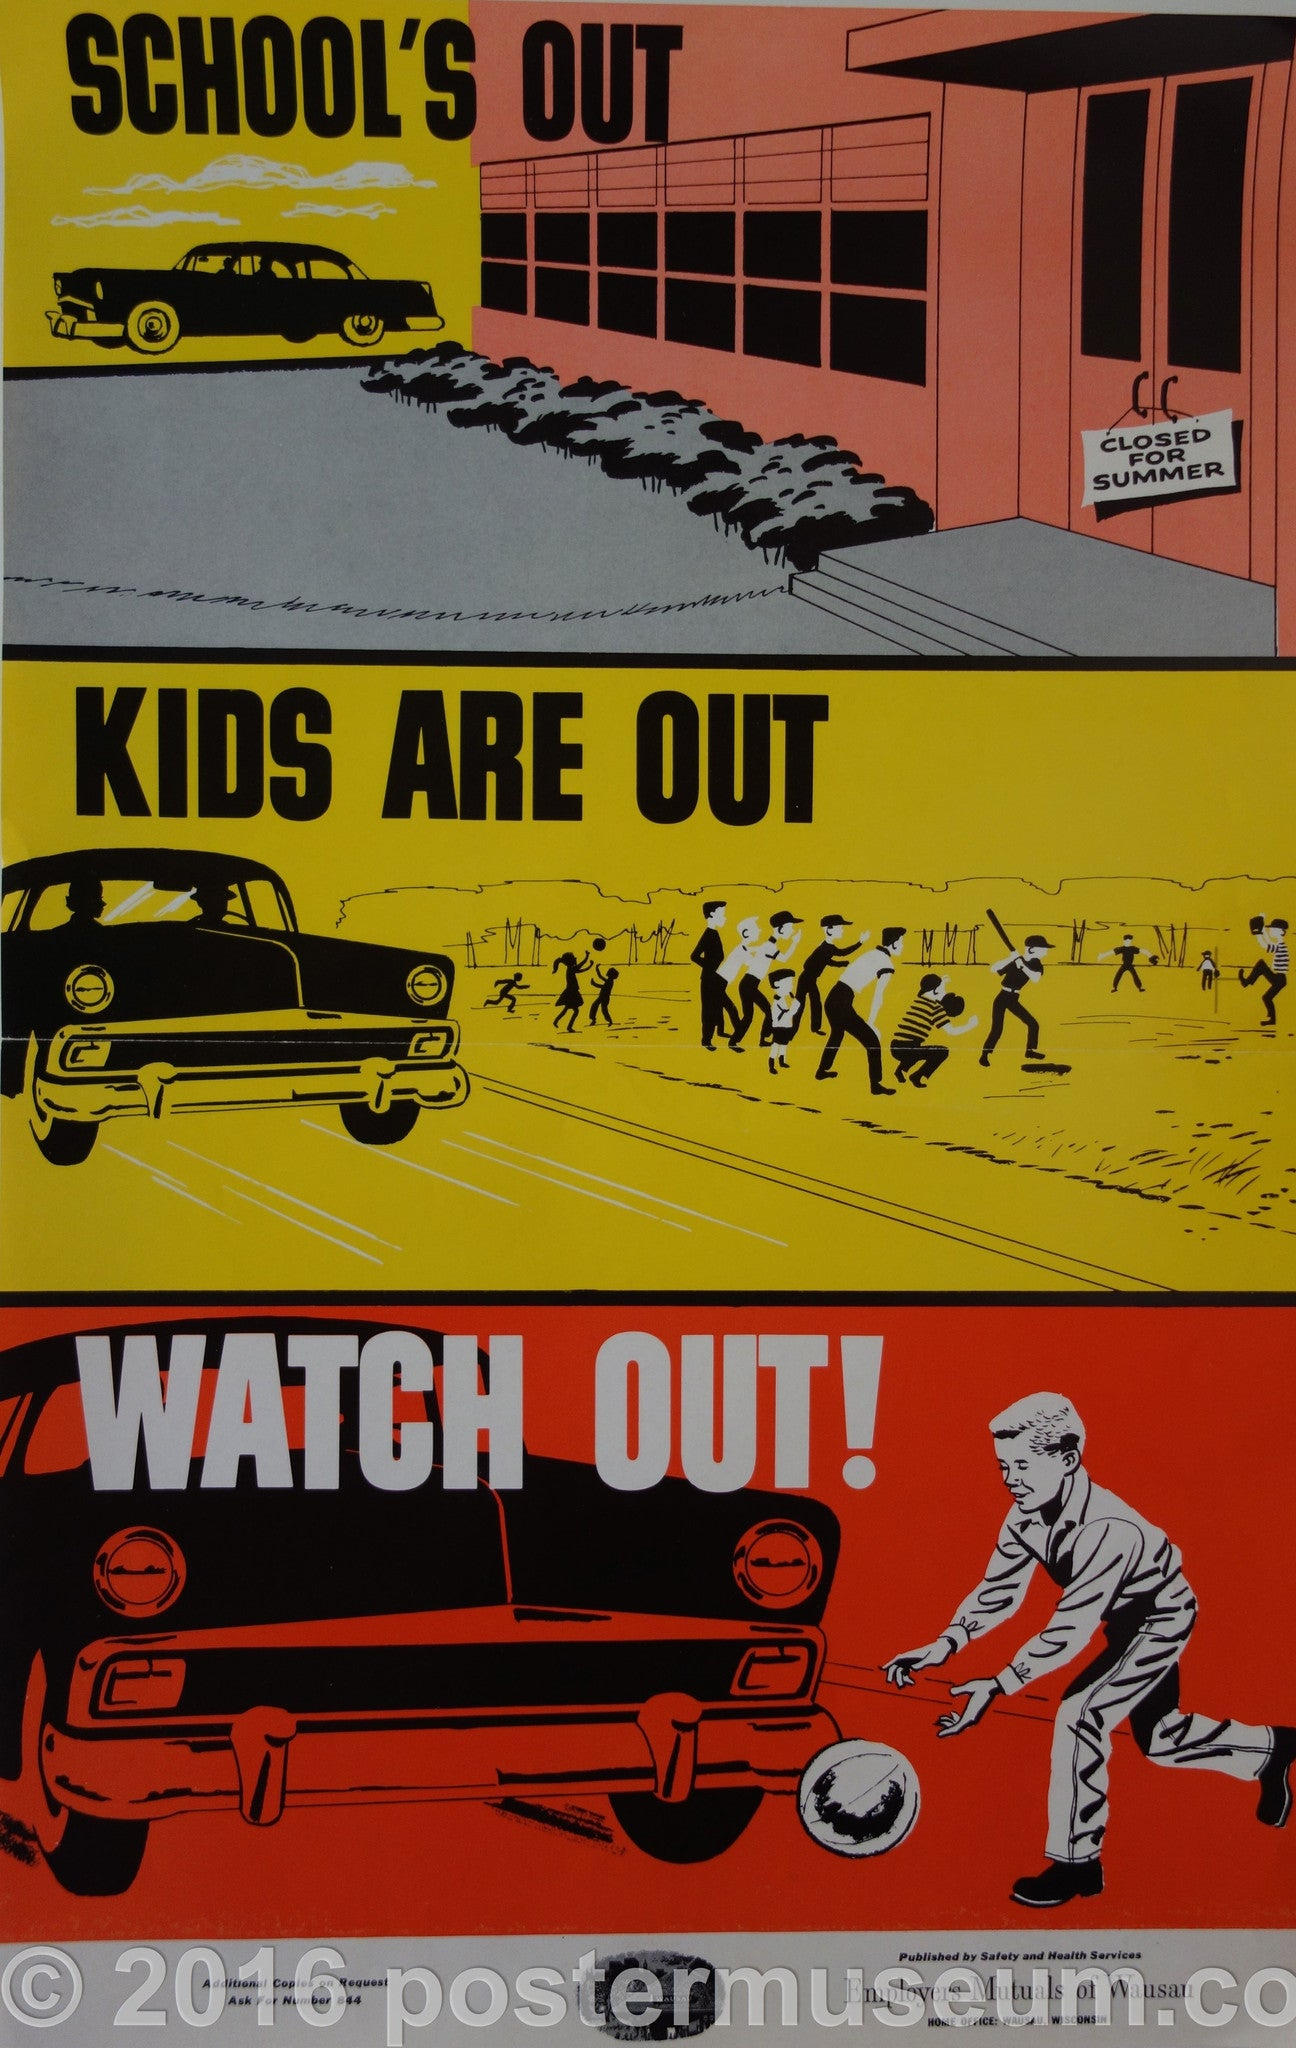 School's Out. Kids Are Out. Watch Out!